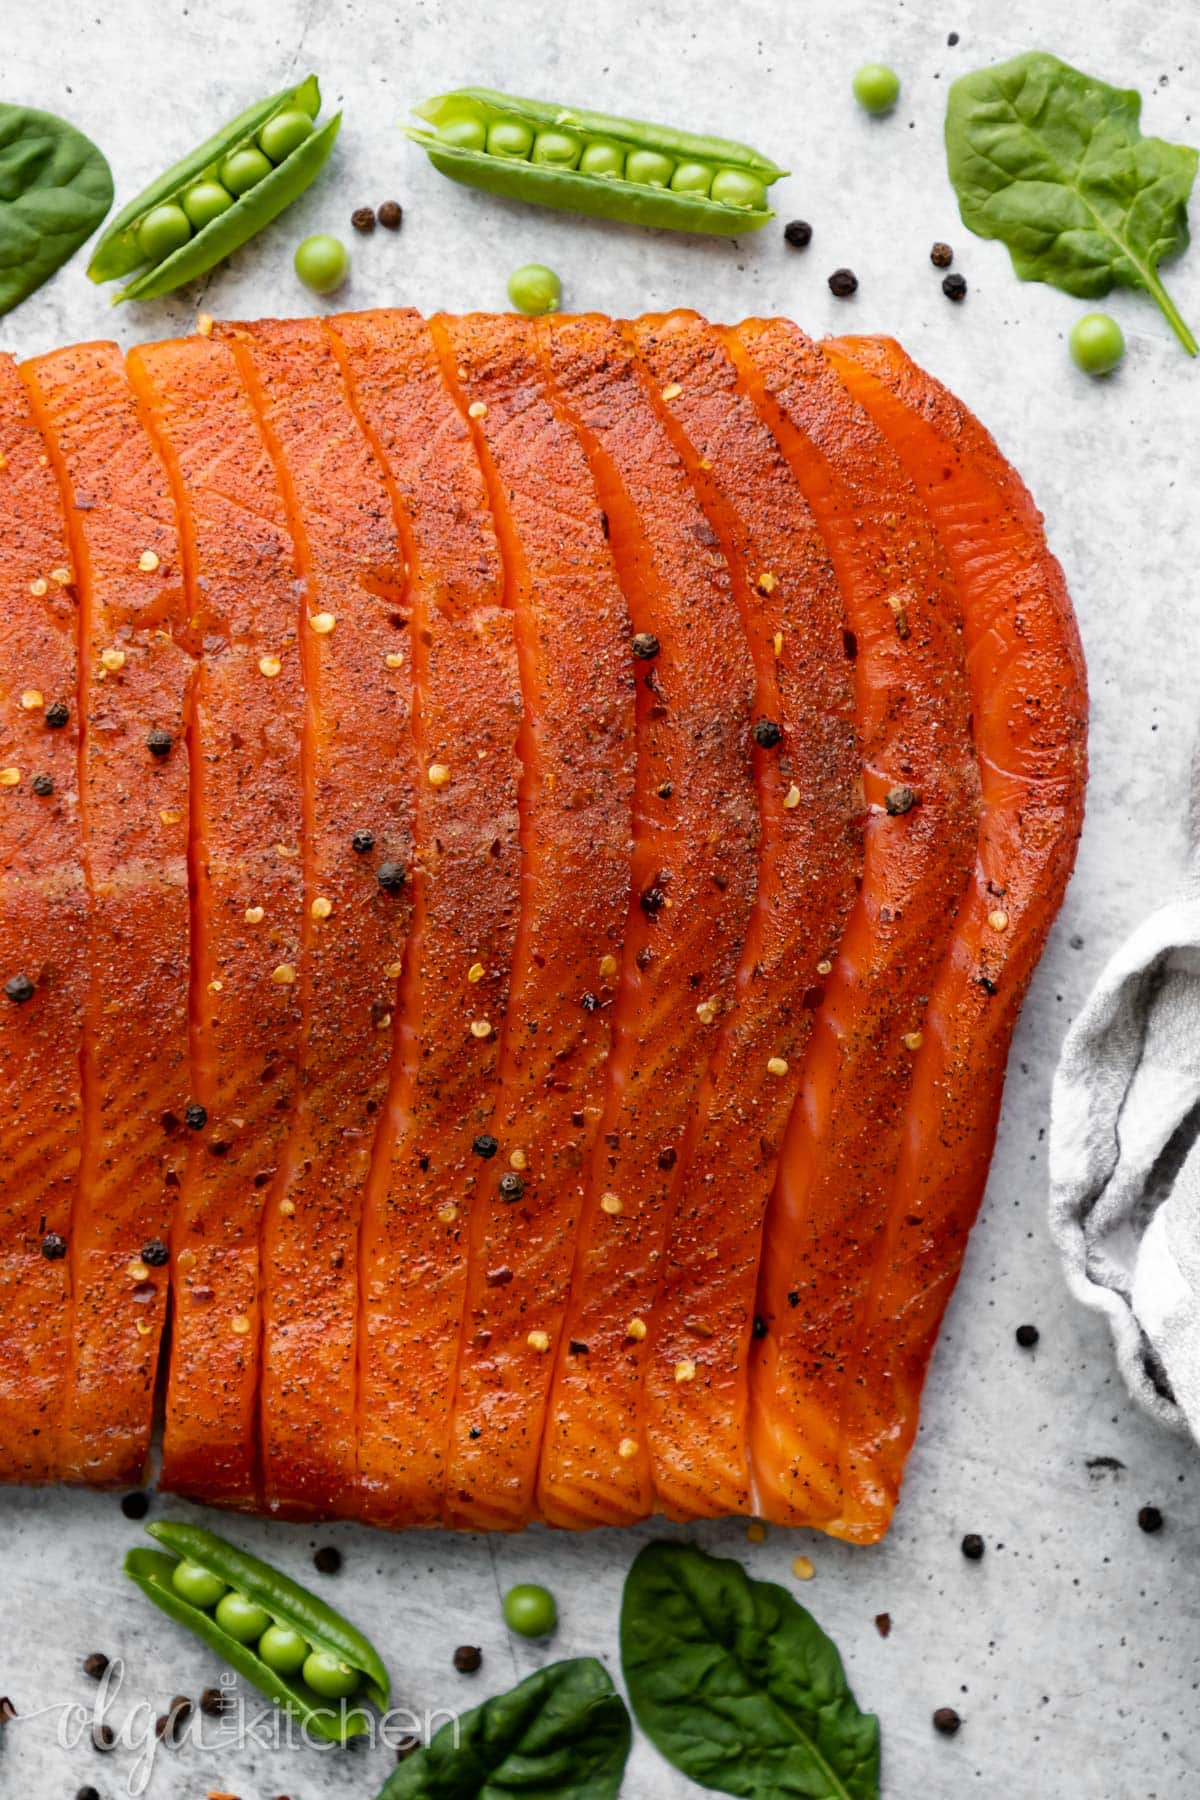 Learn to smoked salmon at home. #smokedsalmon #salmon #olgainthekitchen #holiday #summer #homemade #appetizer